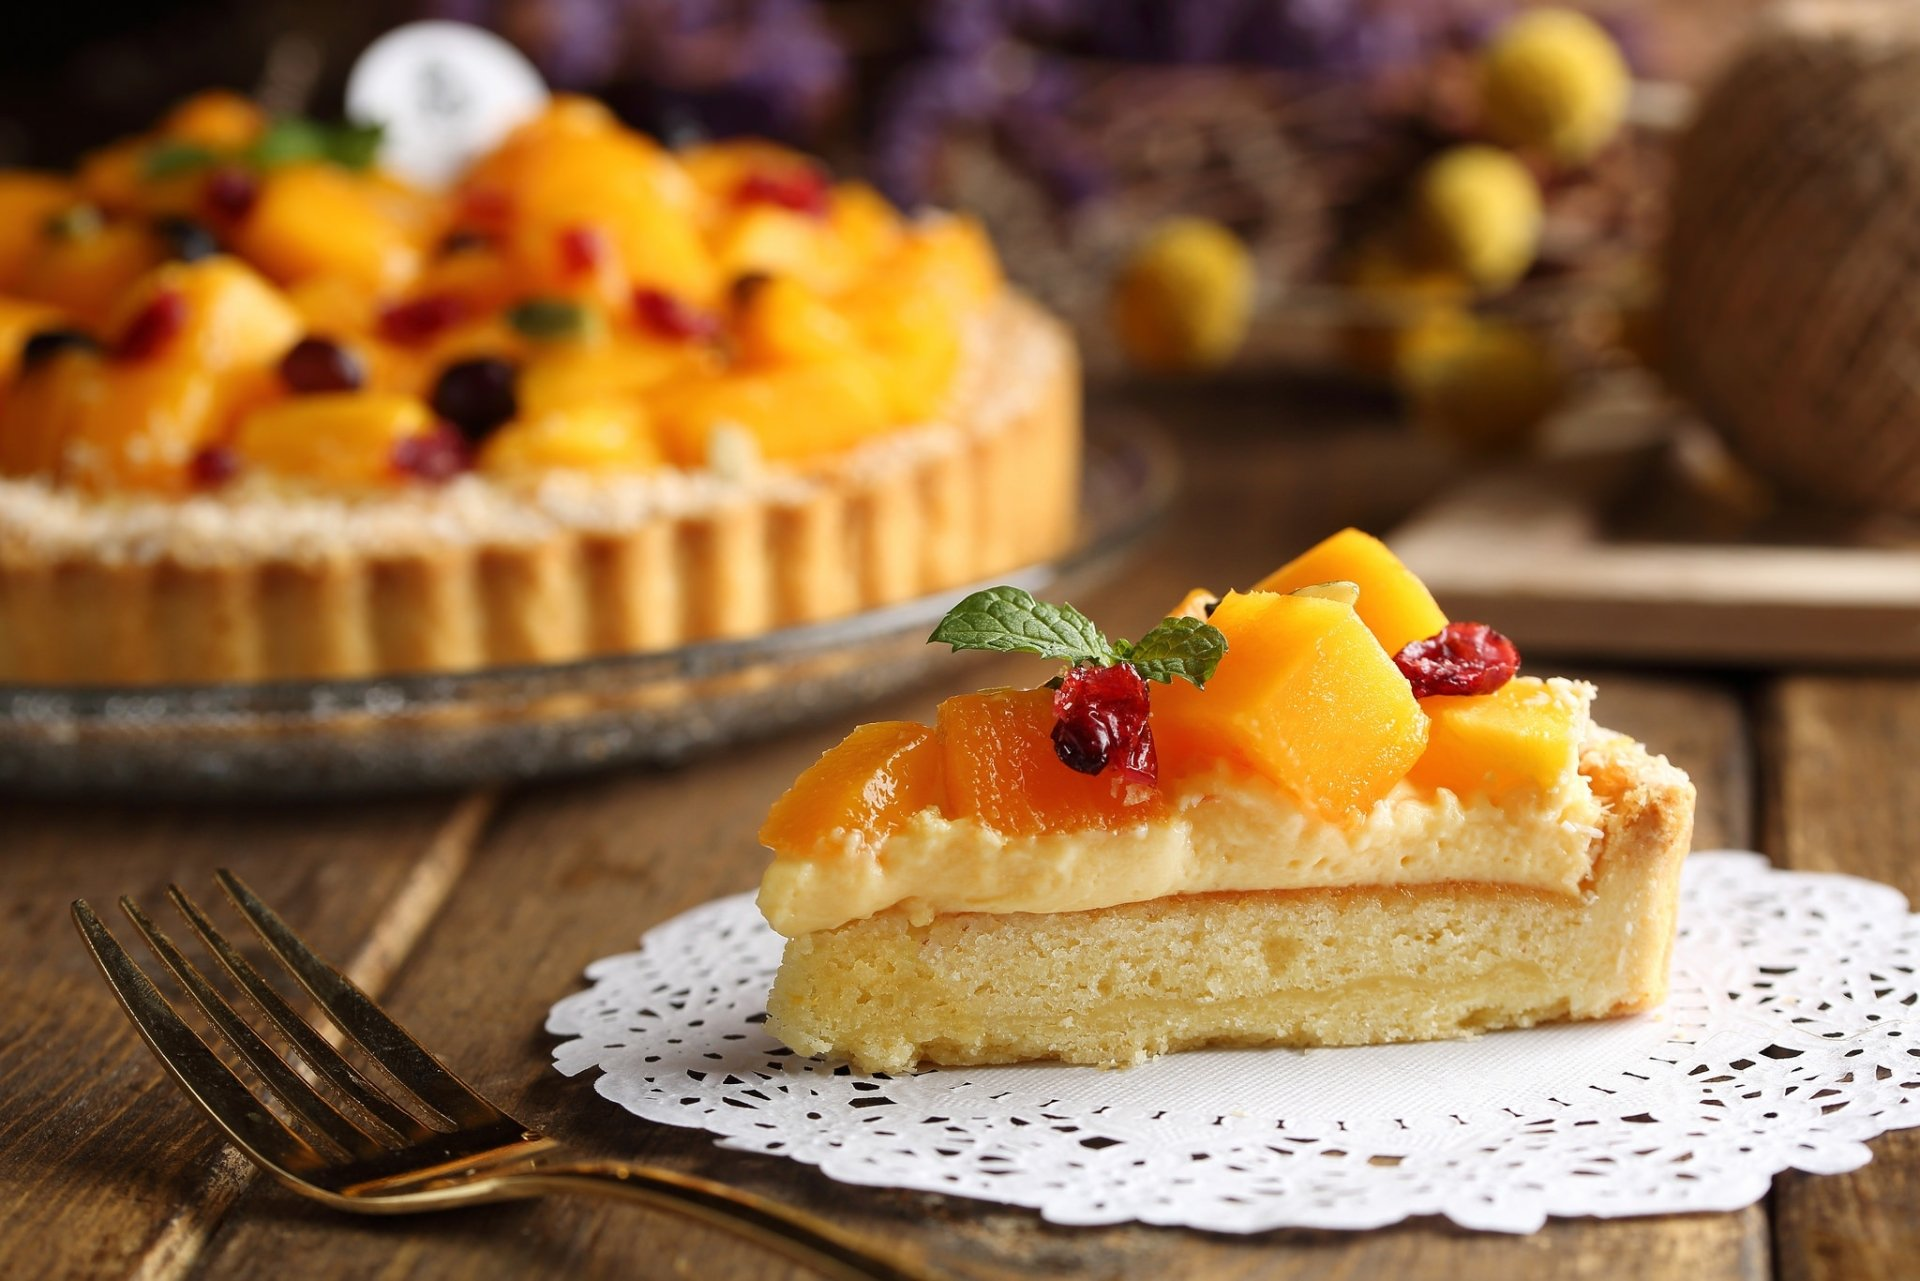 Food - Pie  Pastry Dessert Fruit Mango Wallpaper